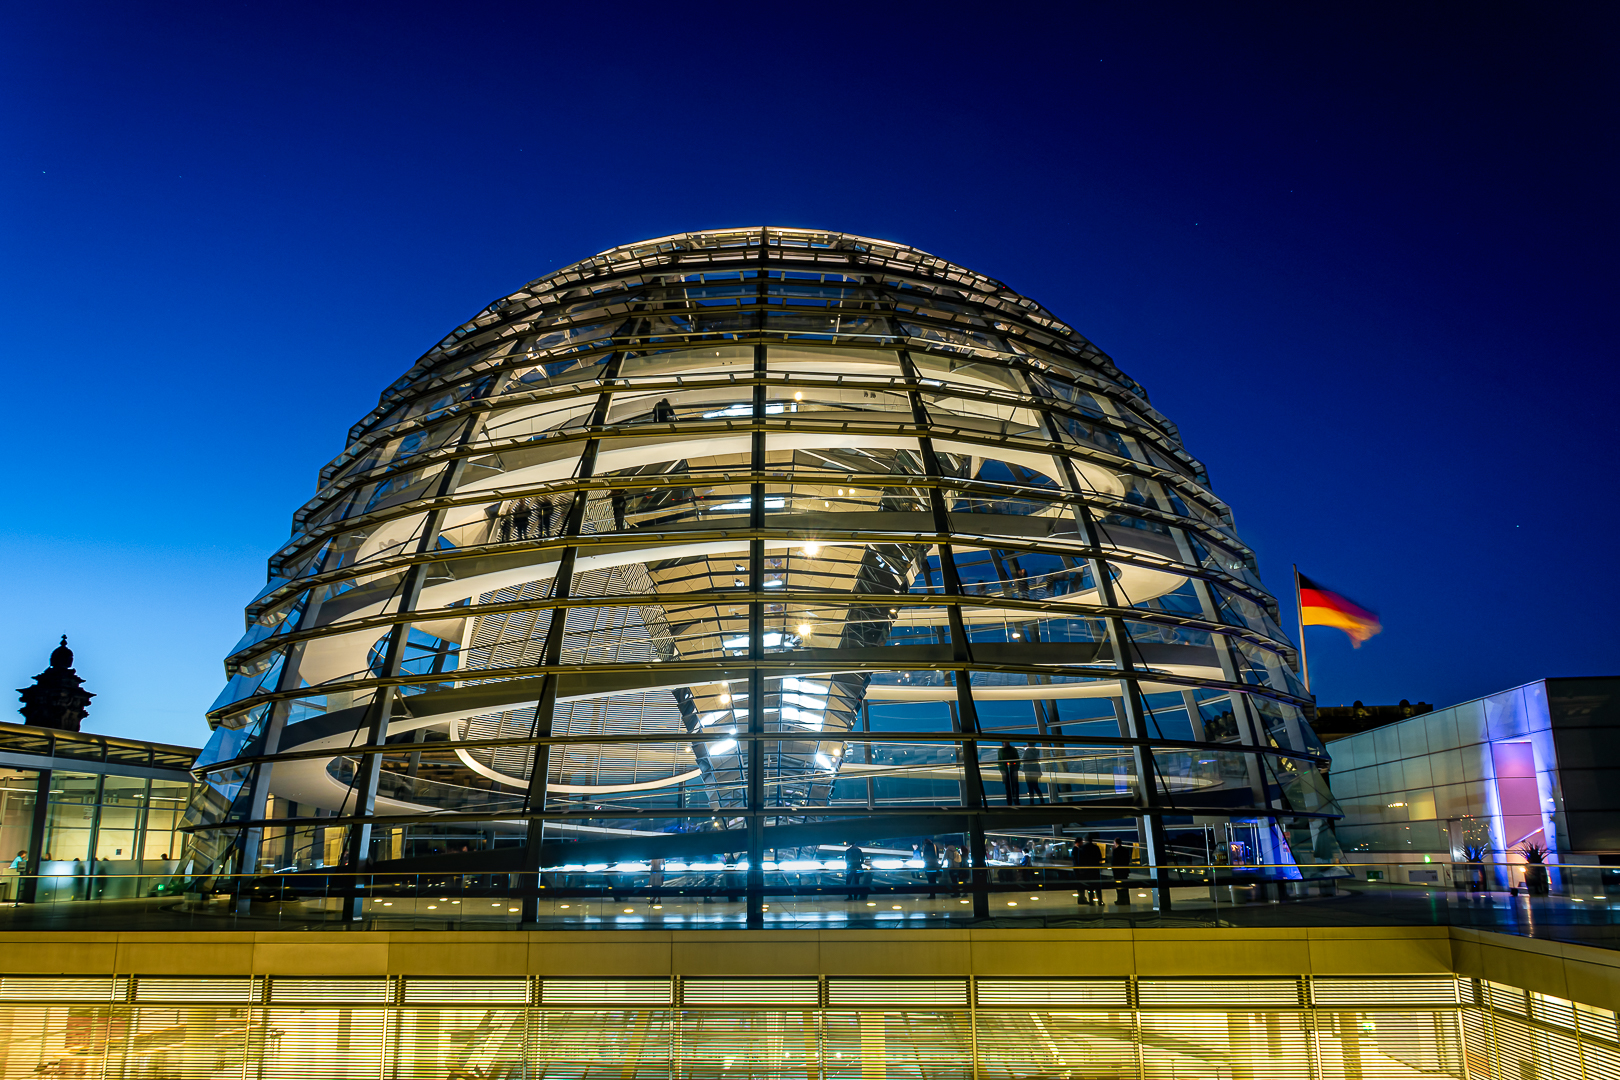 Daniel Poon – Berlin Reichstag Dome By Night – 2ND